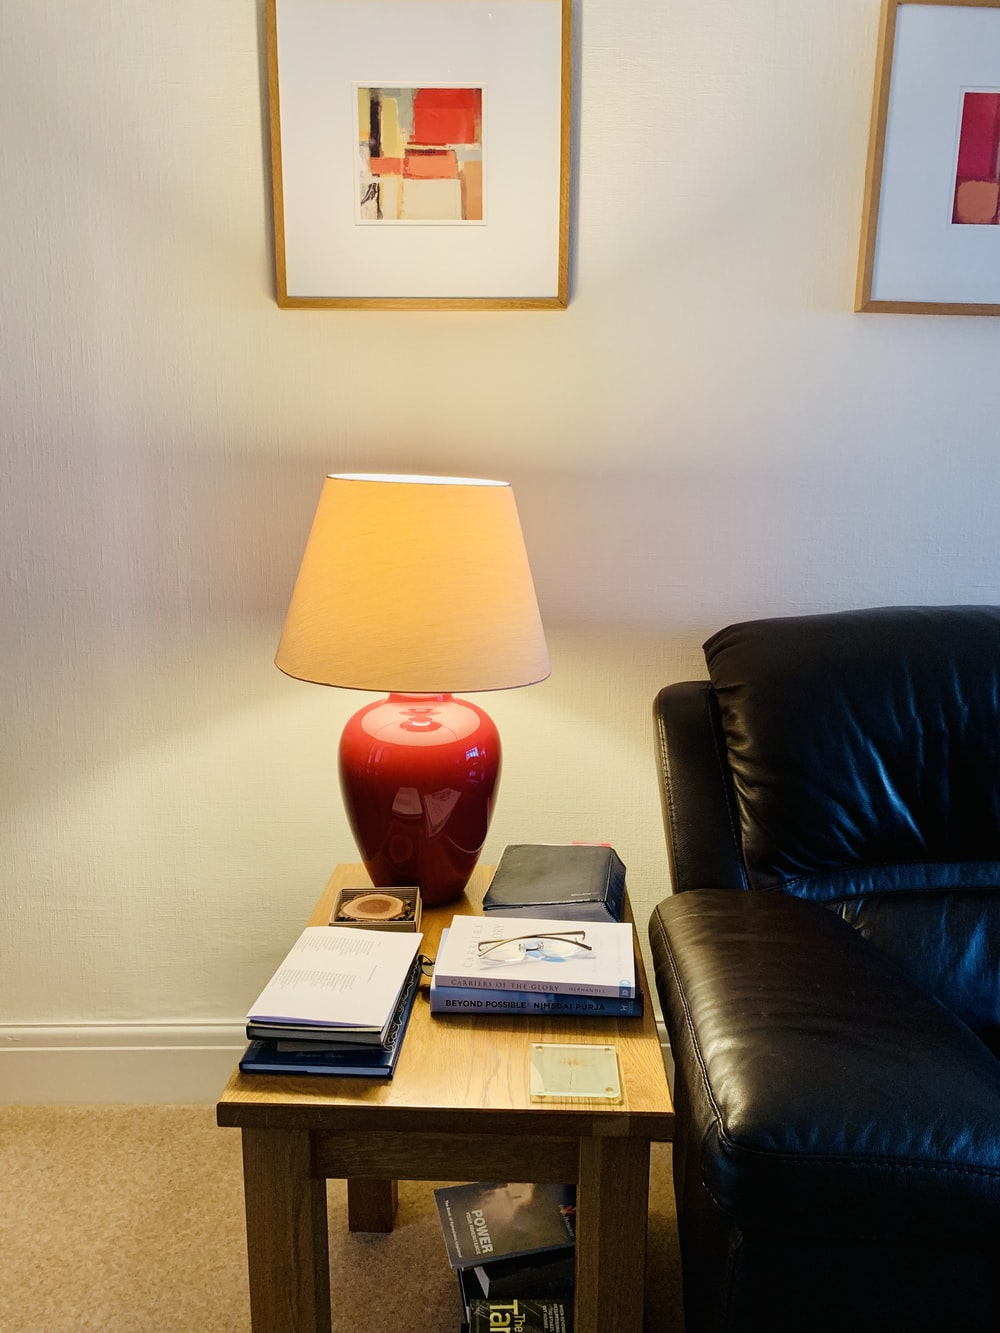 red and white table lamp on brown wooden table